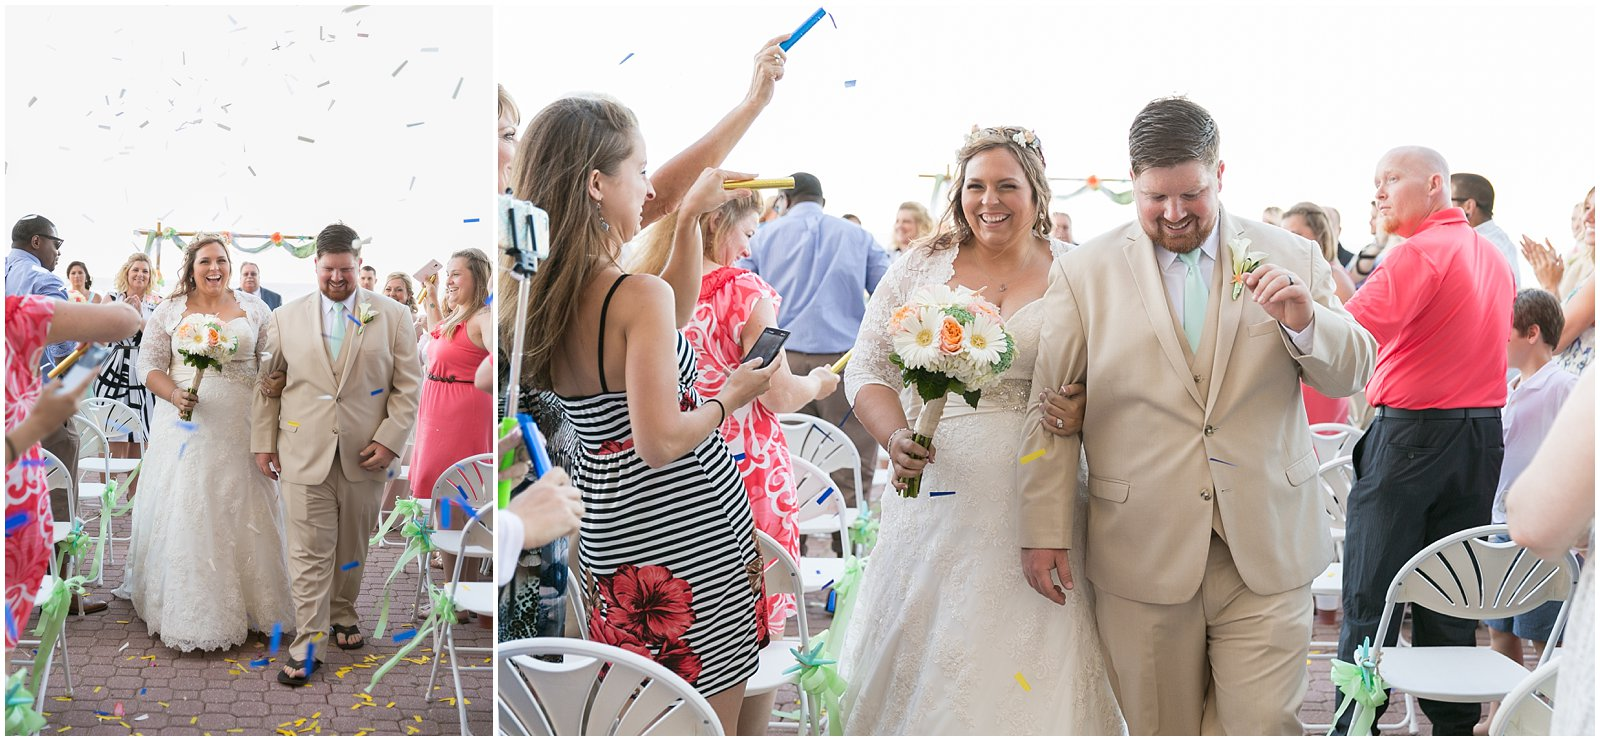 jessica_ryan_photography_wedding_virginia_beach_virginia_wedding_photographer_candid_wedding_photography_lifestyle_photojournalistic_real_moments_0090